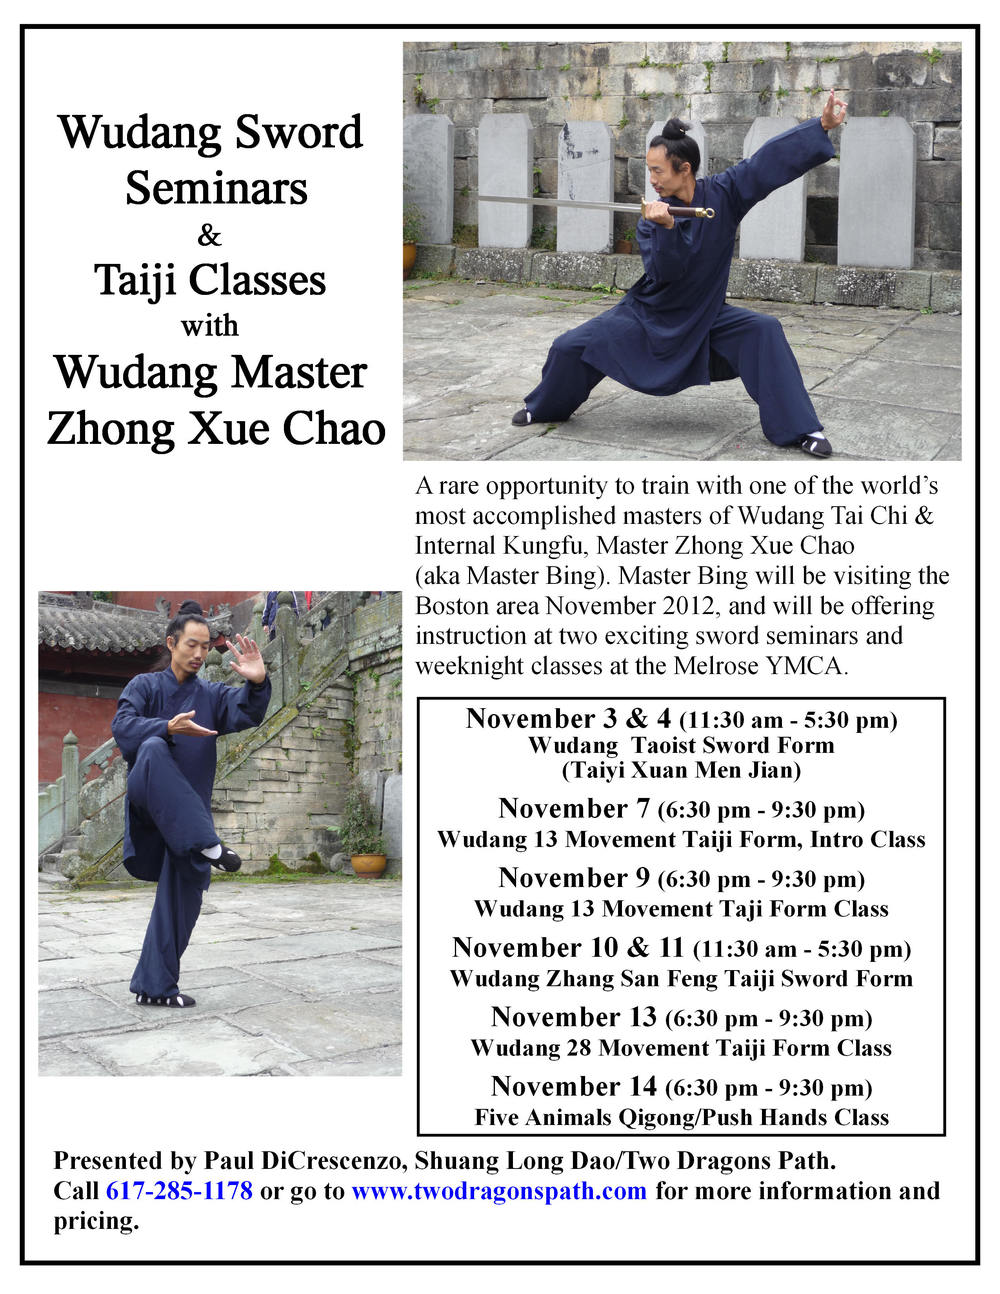 Master Bing Fall 2012 Seminars